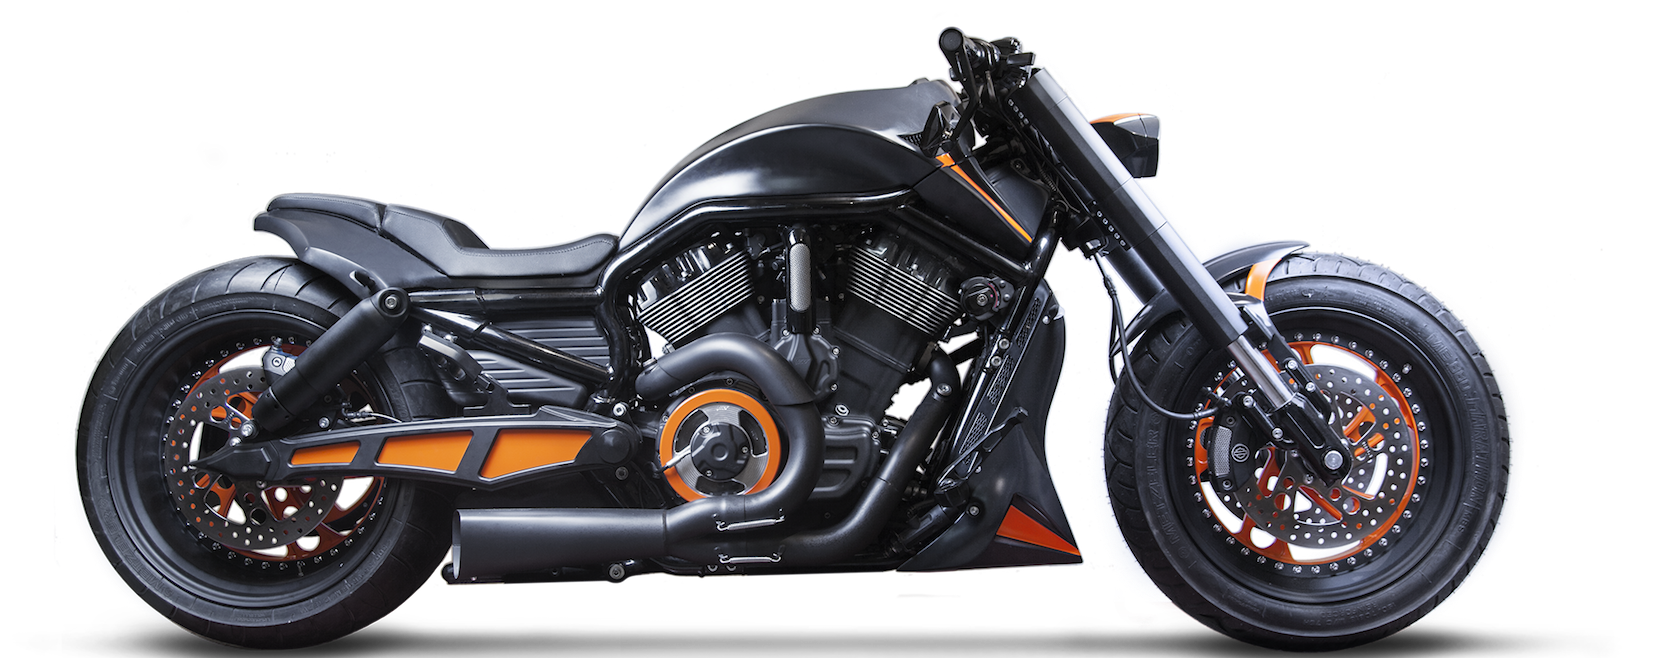 Harley Davidson VROD Black Orange